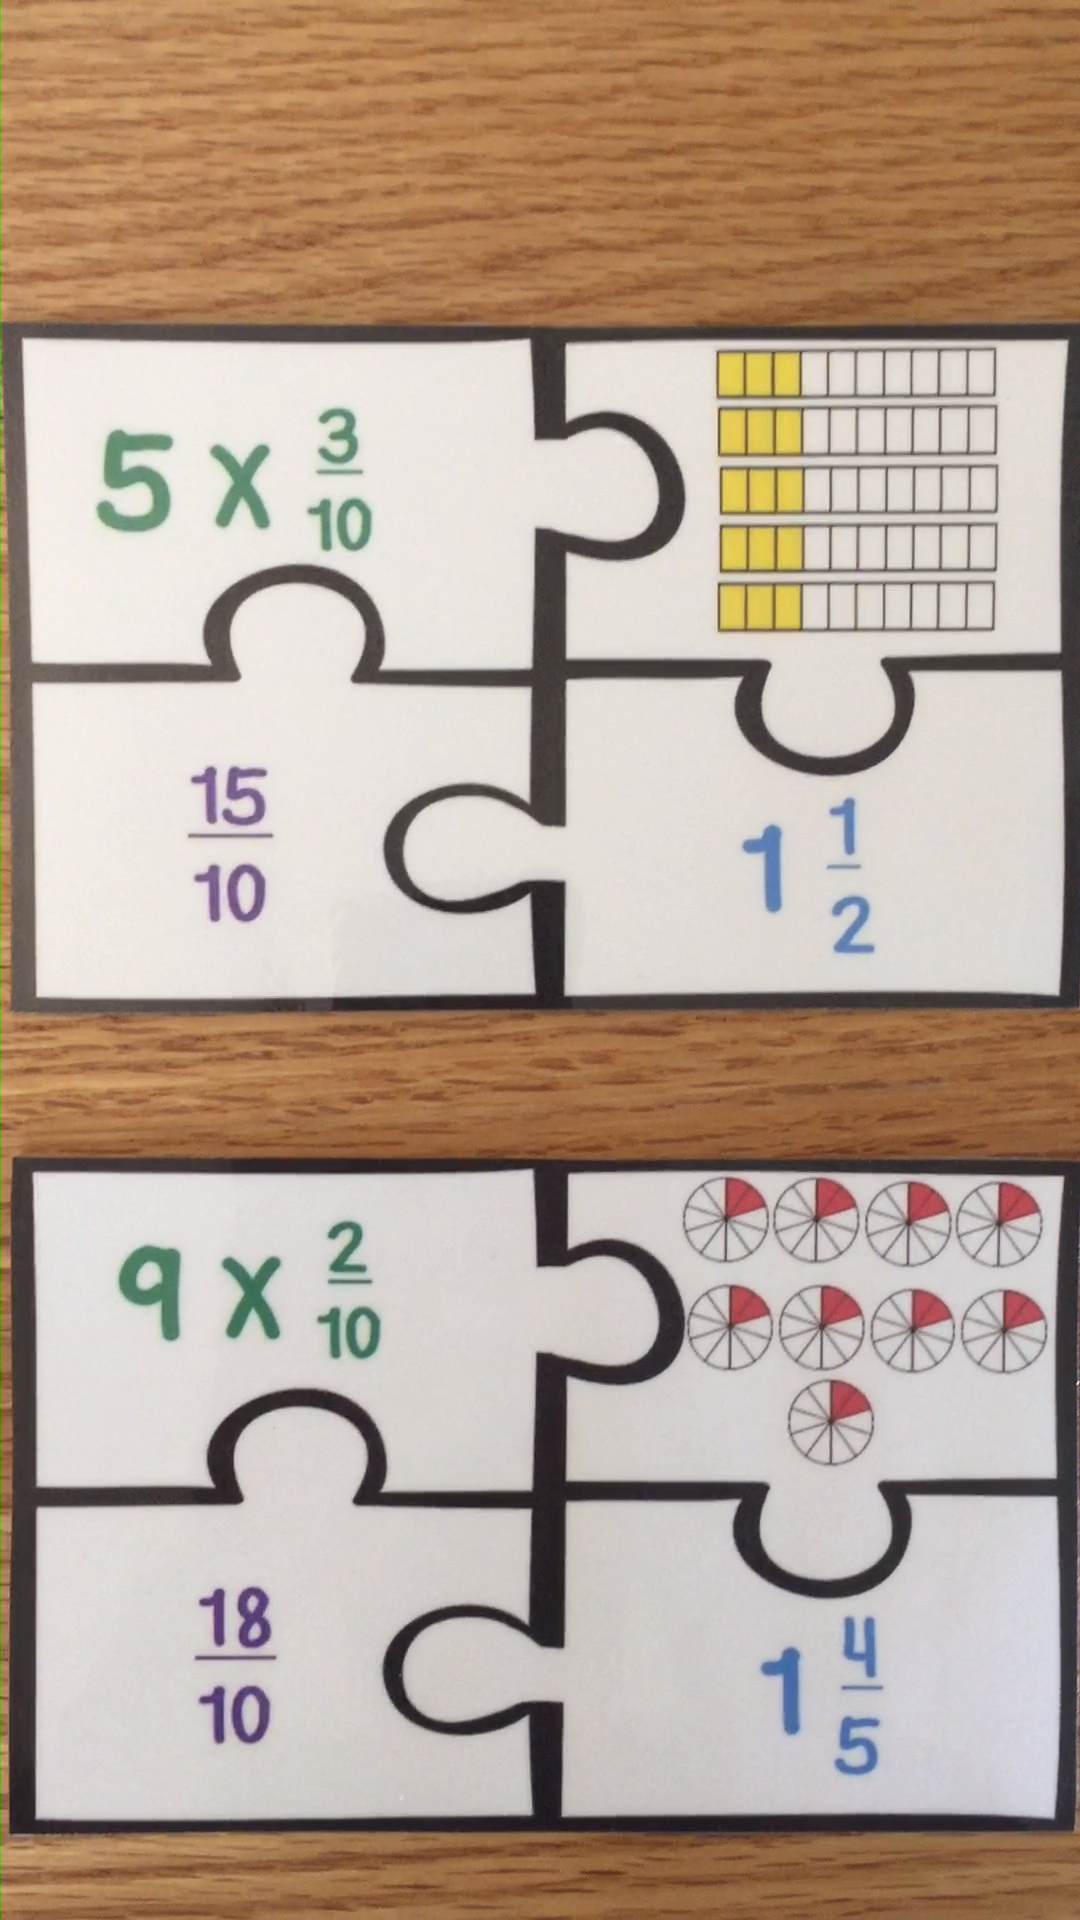 Multiplication Of Whole Numbers Worksheets For Grade 4